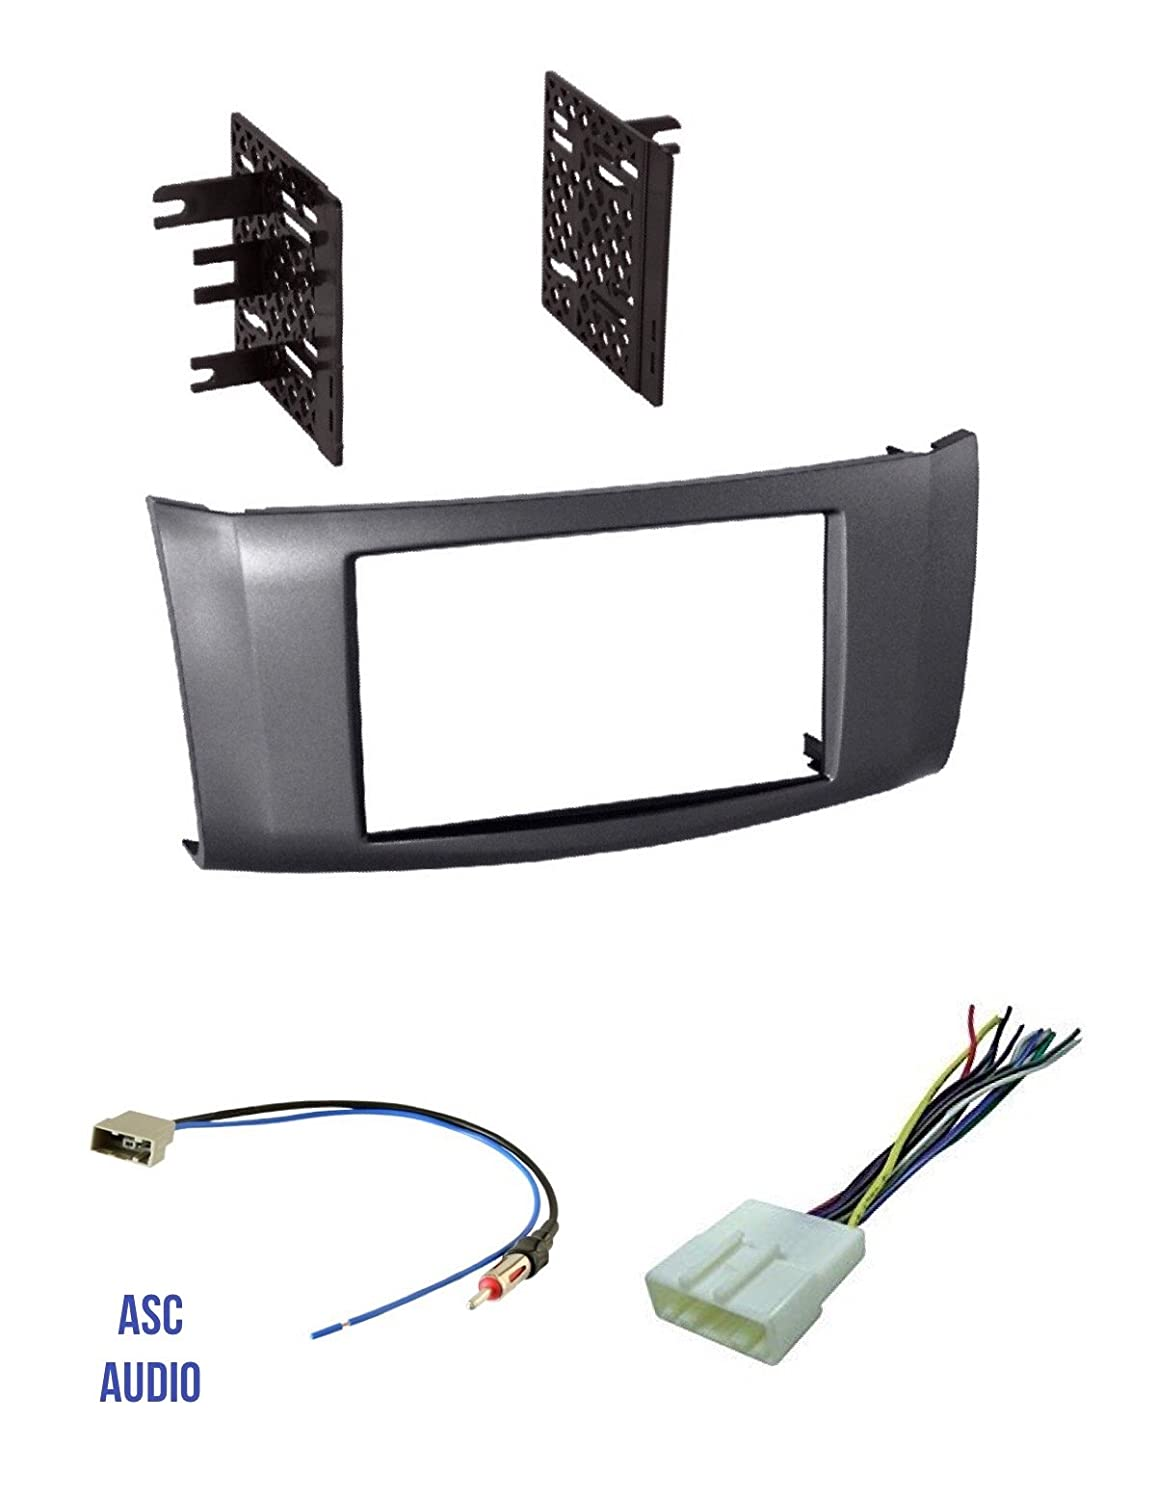 Wire Harness Premium Car Stereo Install Charcoal Gray Dash Kit and Antenna Adapter for Installing a Double Din Aftermarket Radio for 2013 2014 2015 2016 Nissan Sentra Other